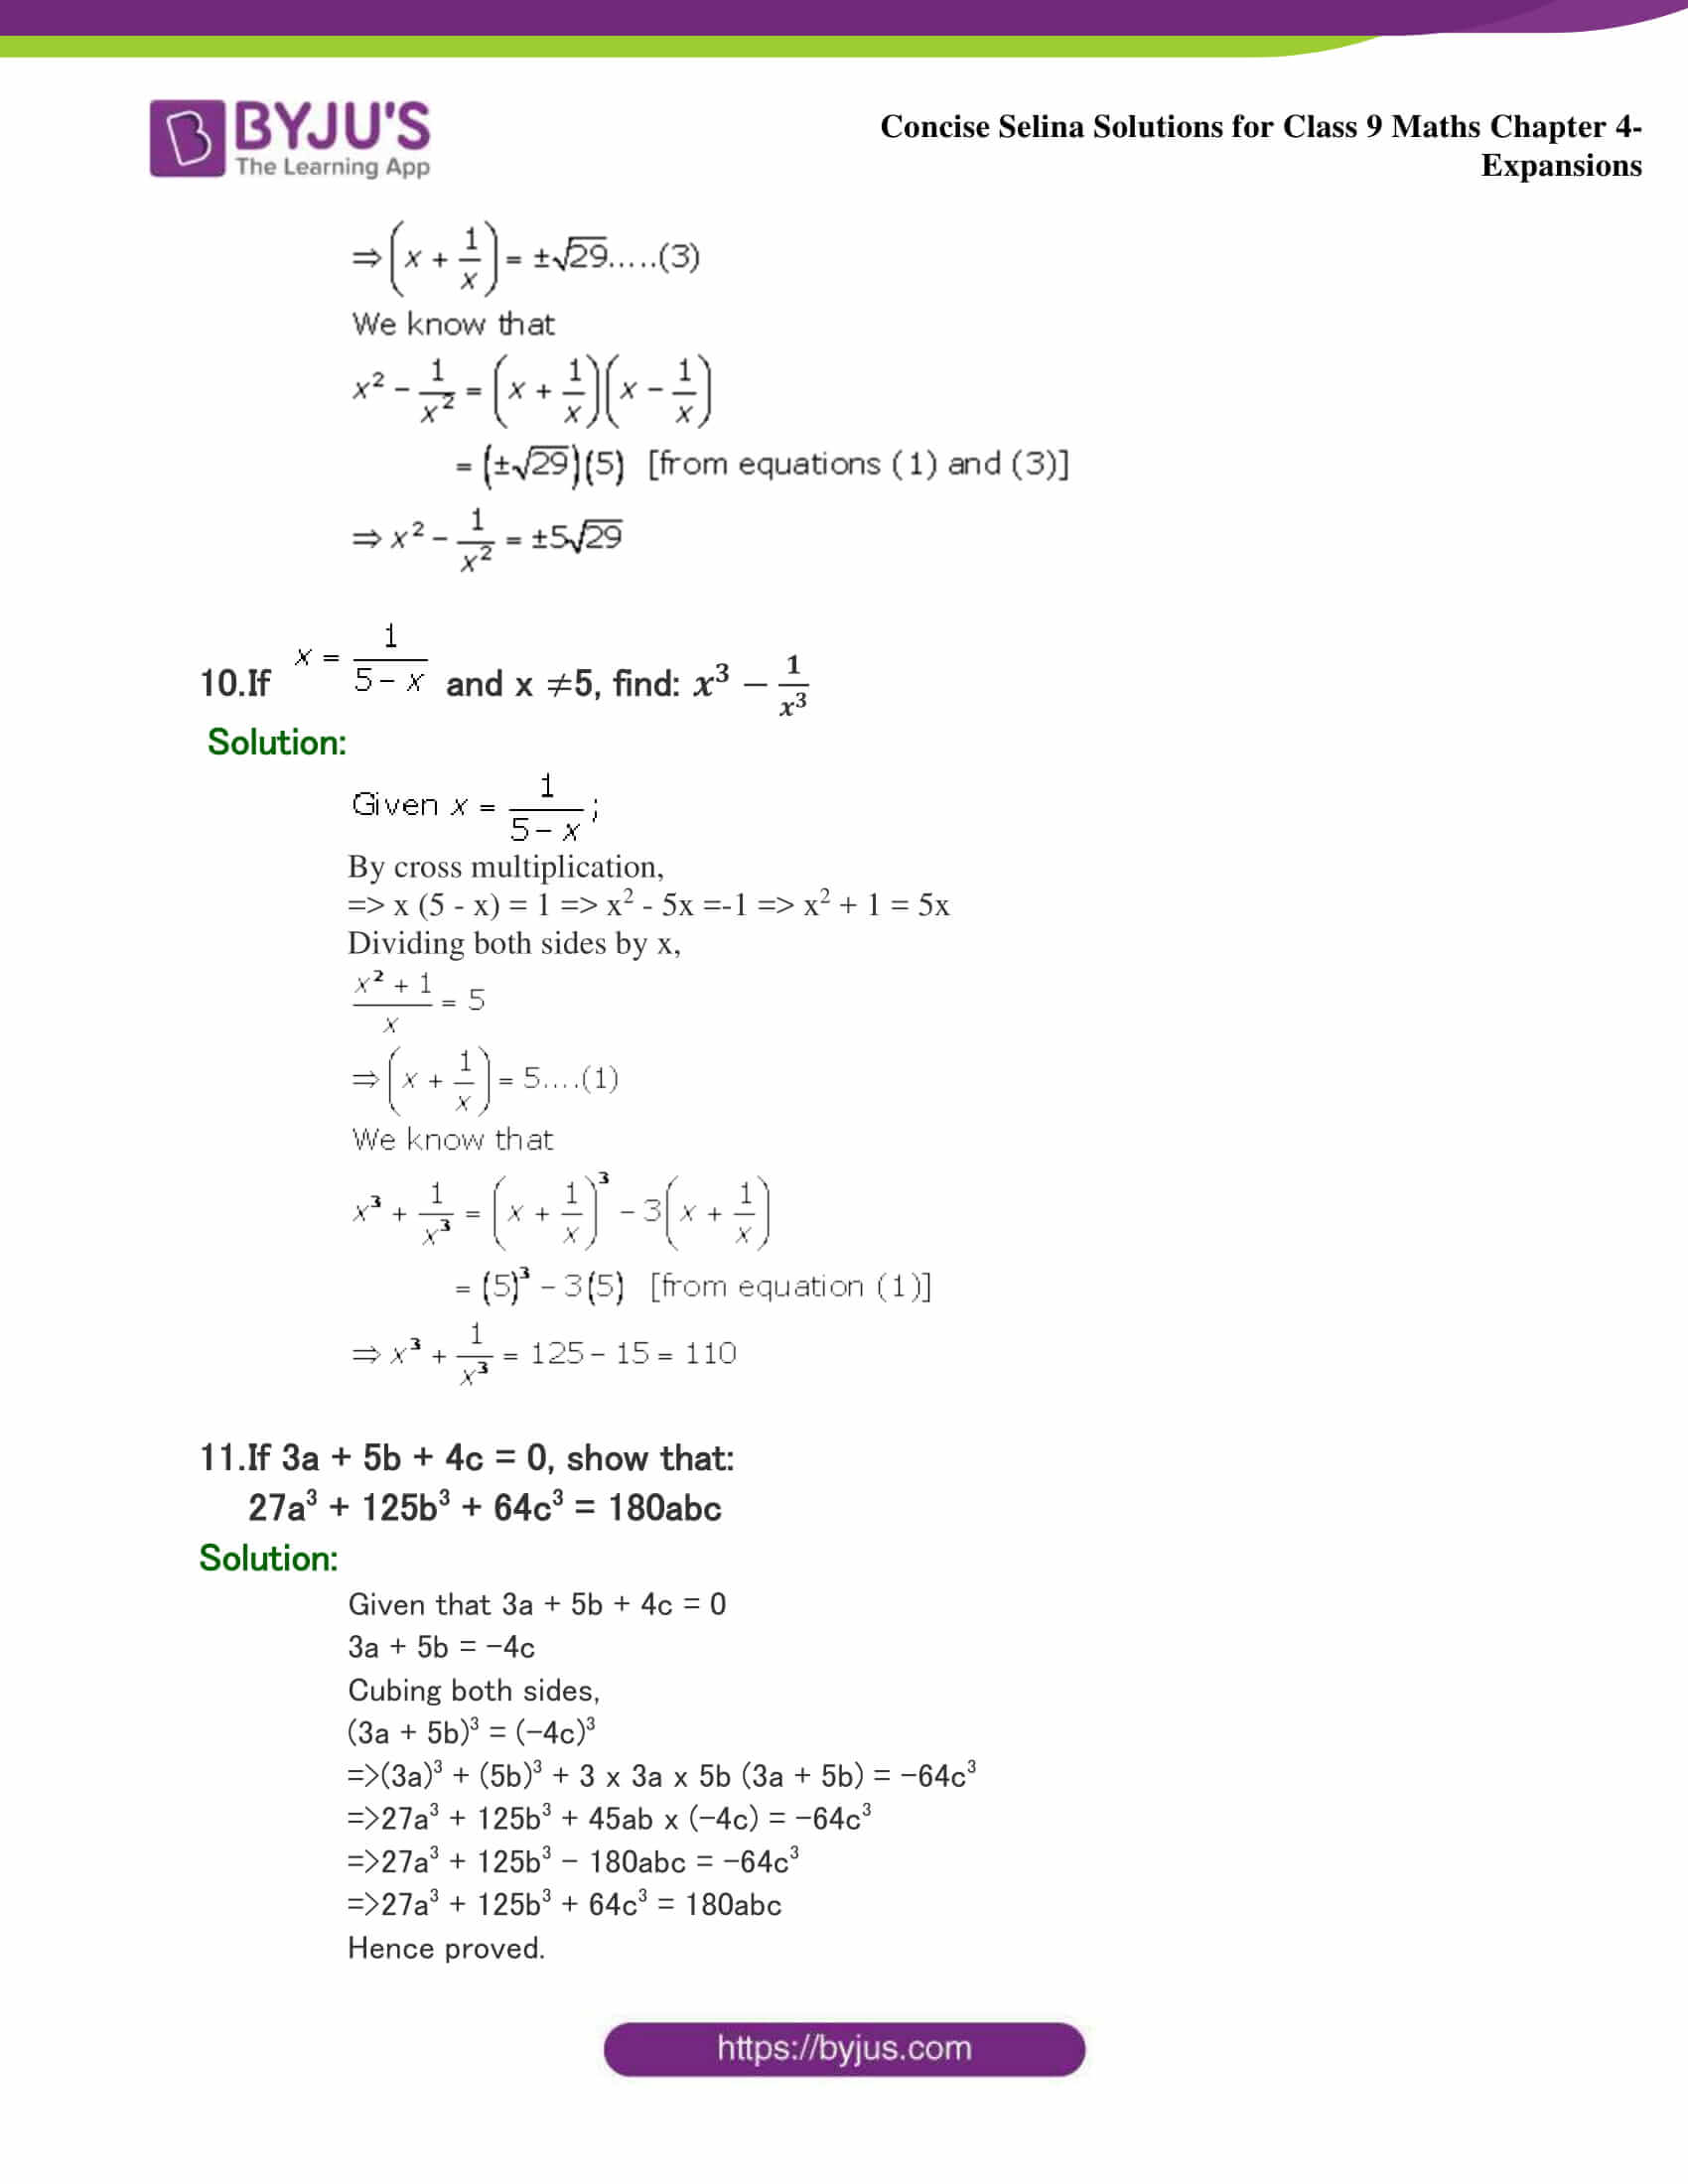 Selina Solutions Class 9 Maths Chapter 4 Expansions part 37